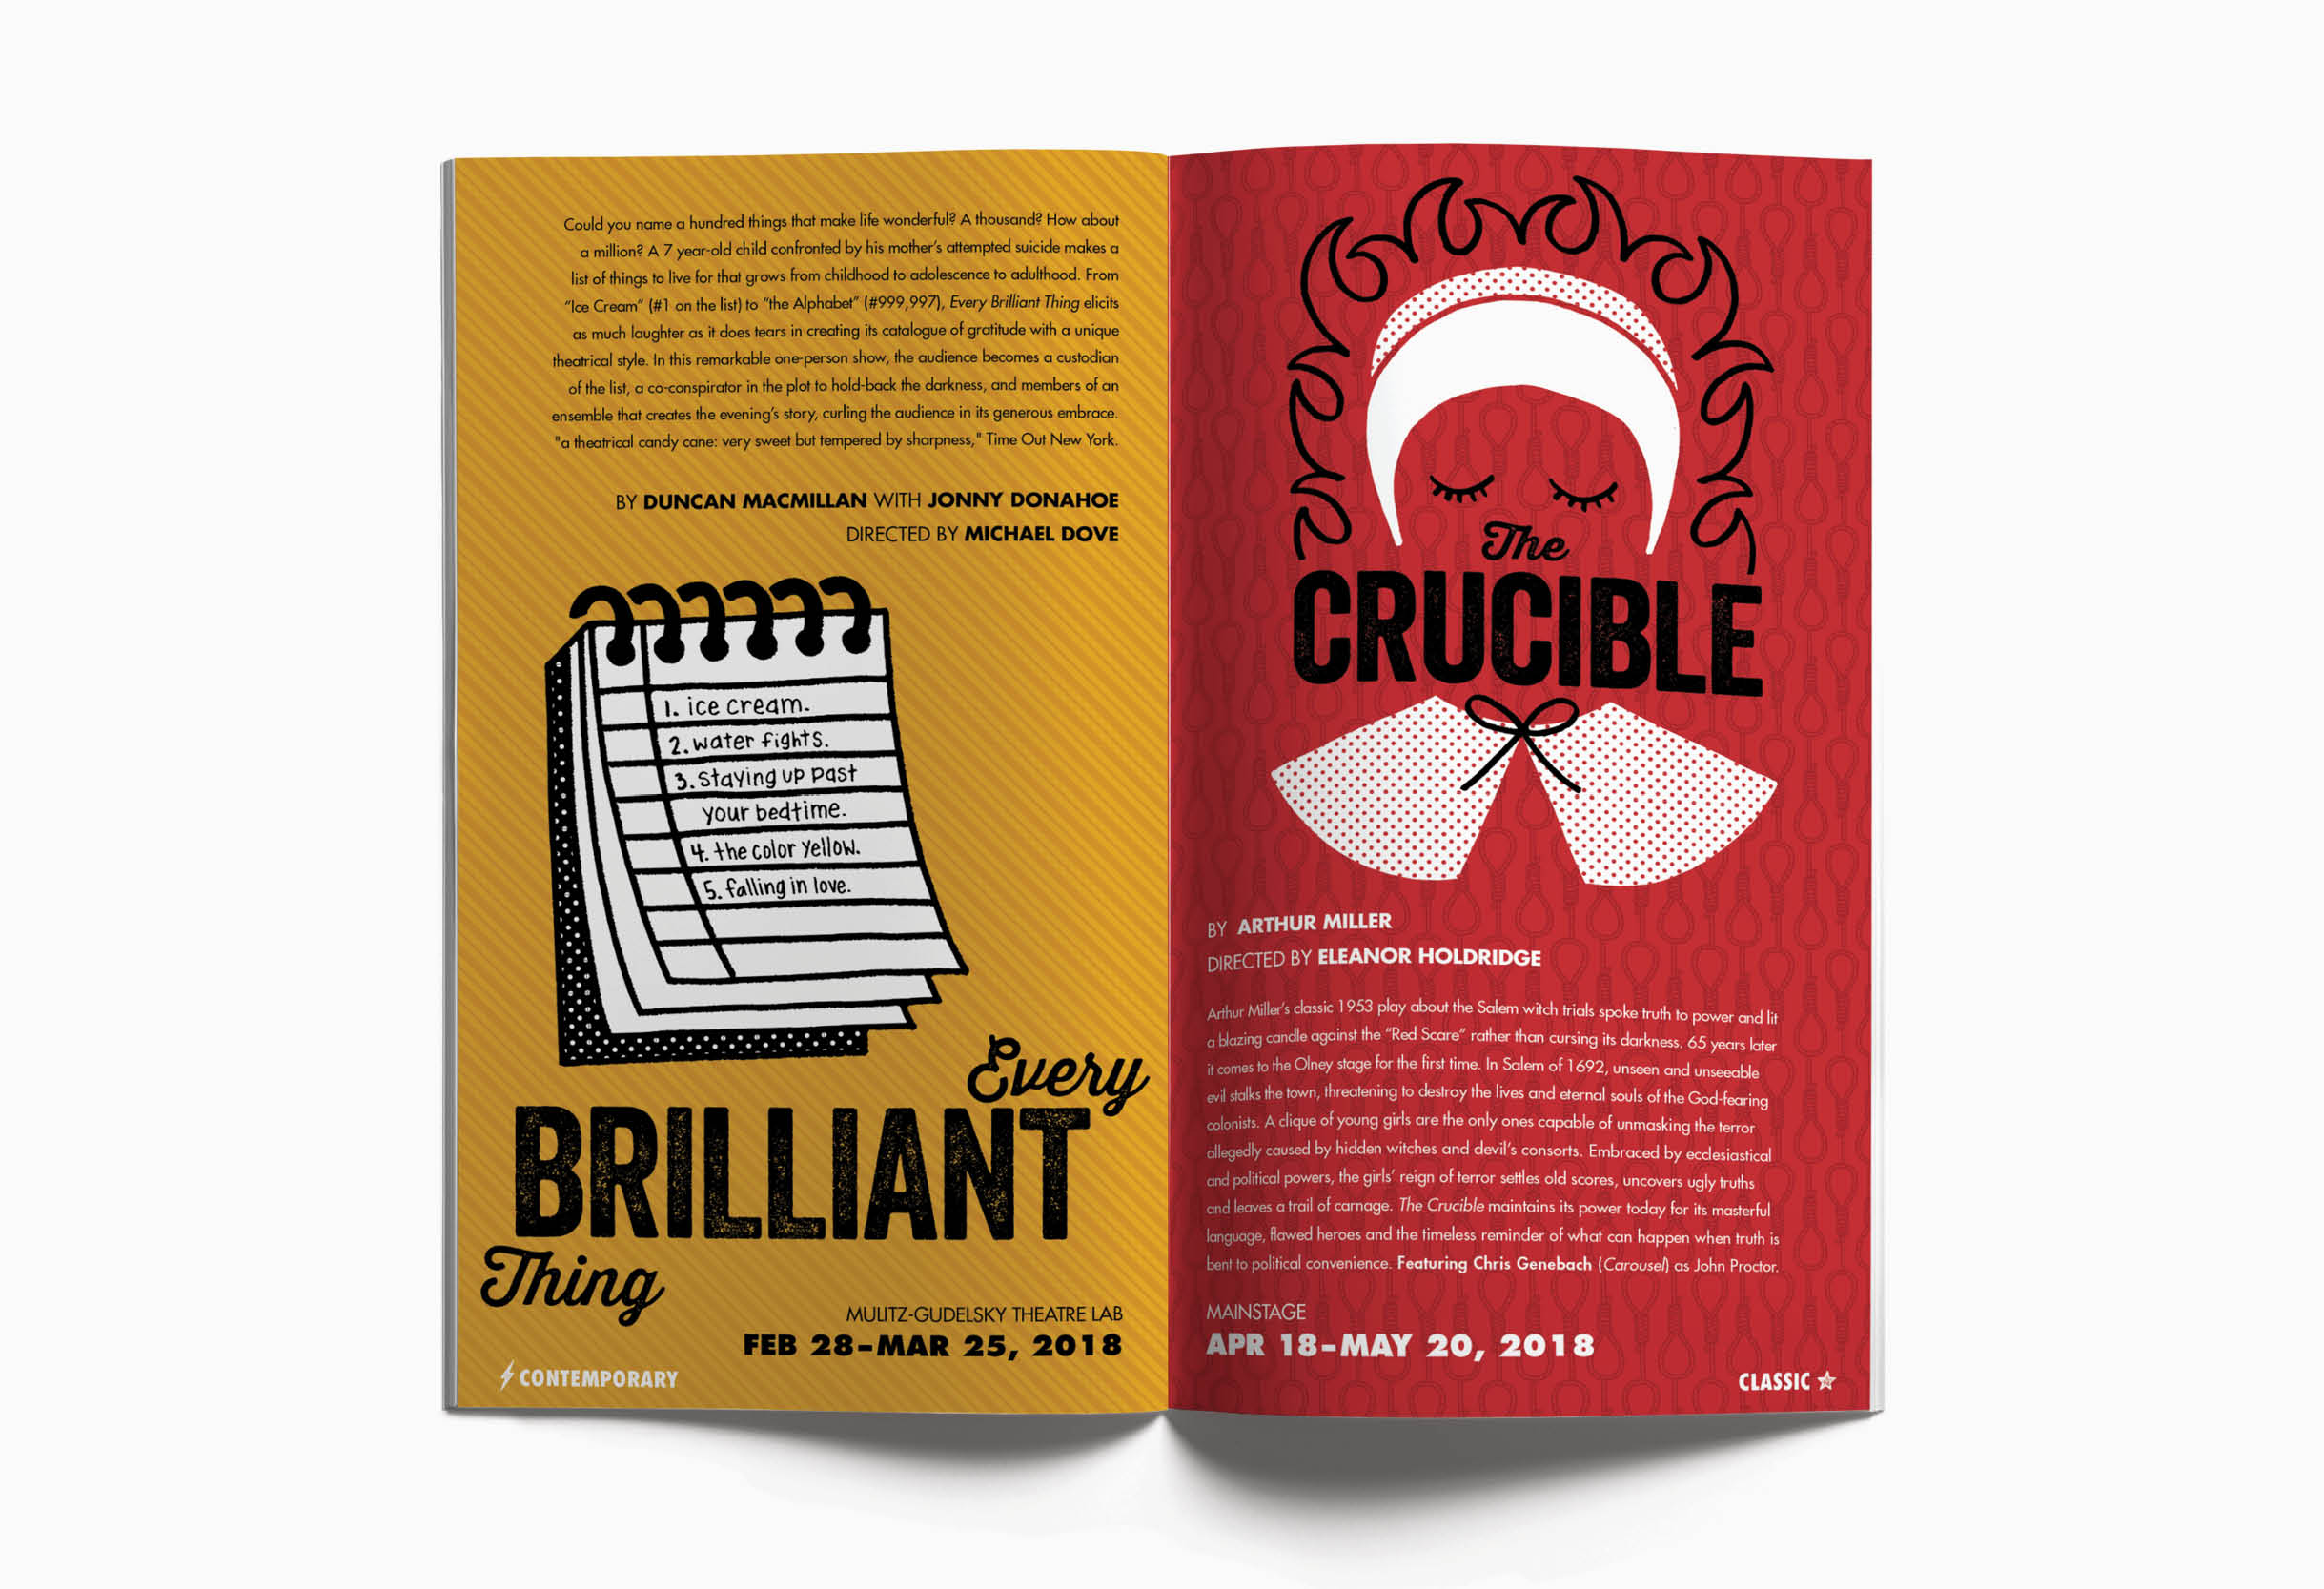 Olney Theatre Center booklet and season art: Every Brillian Thing and The Crucible